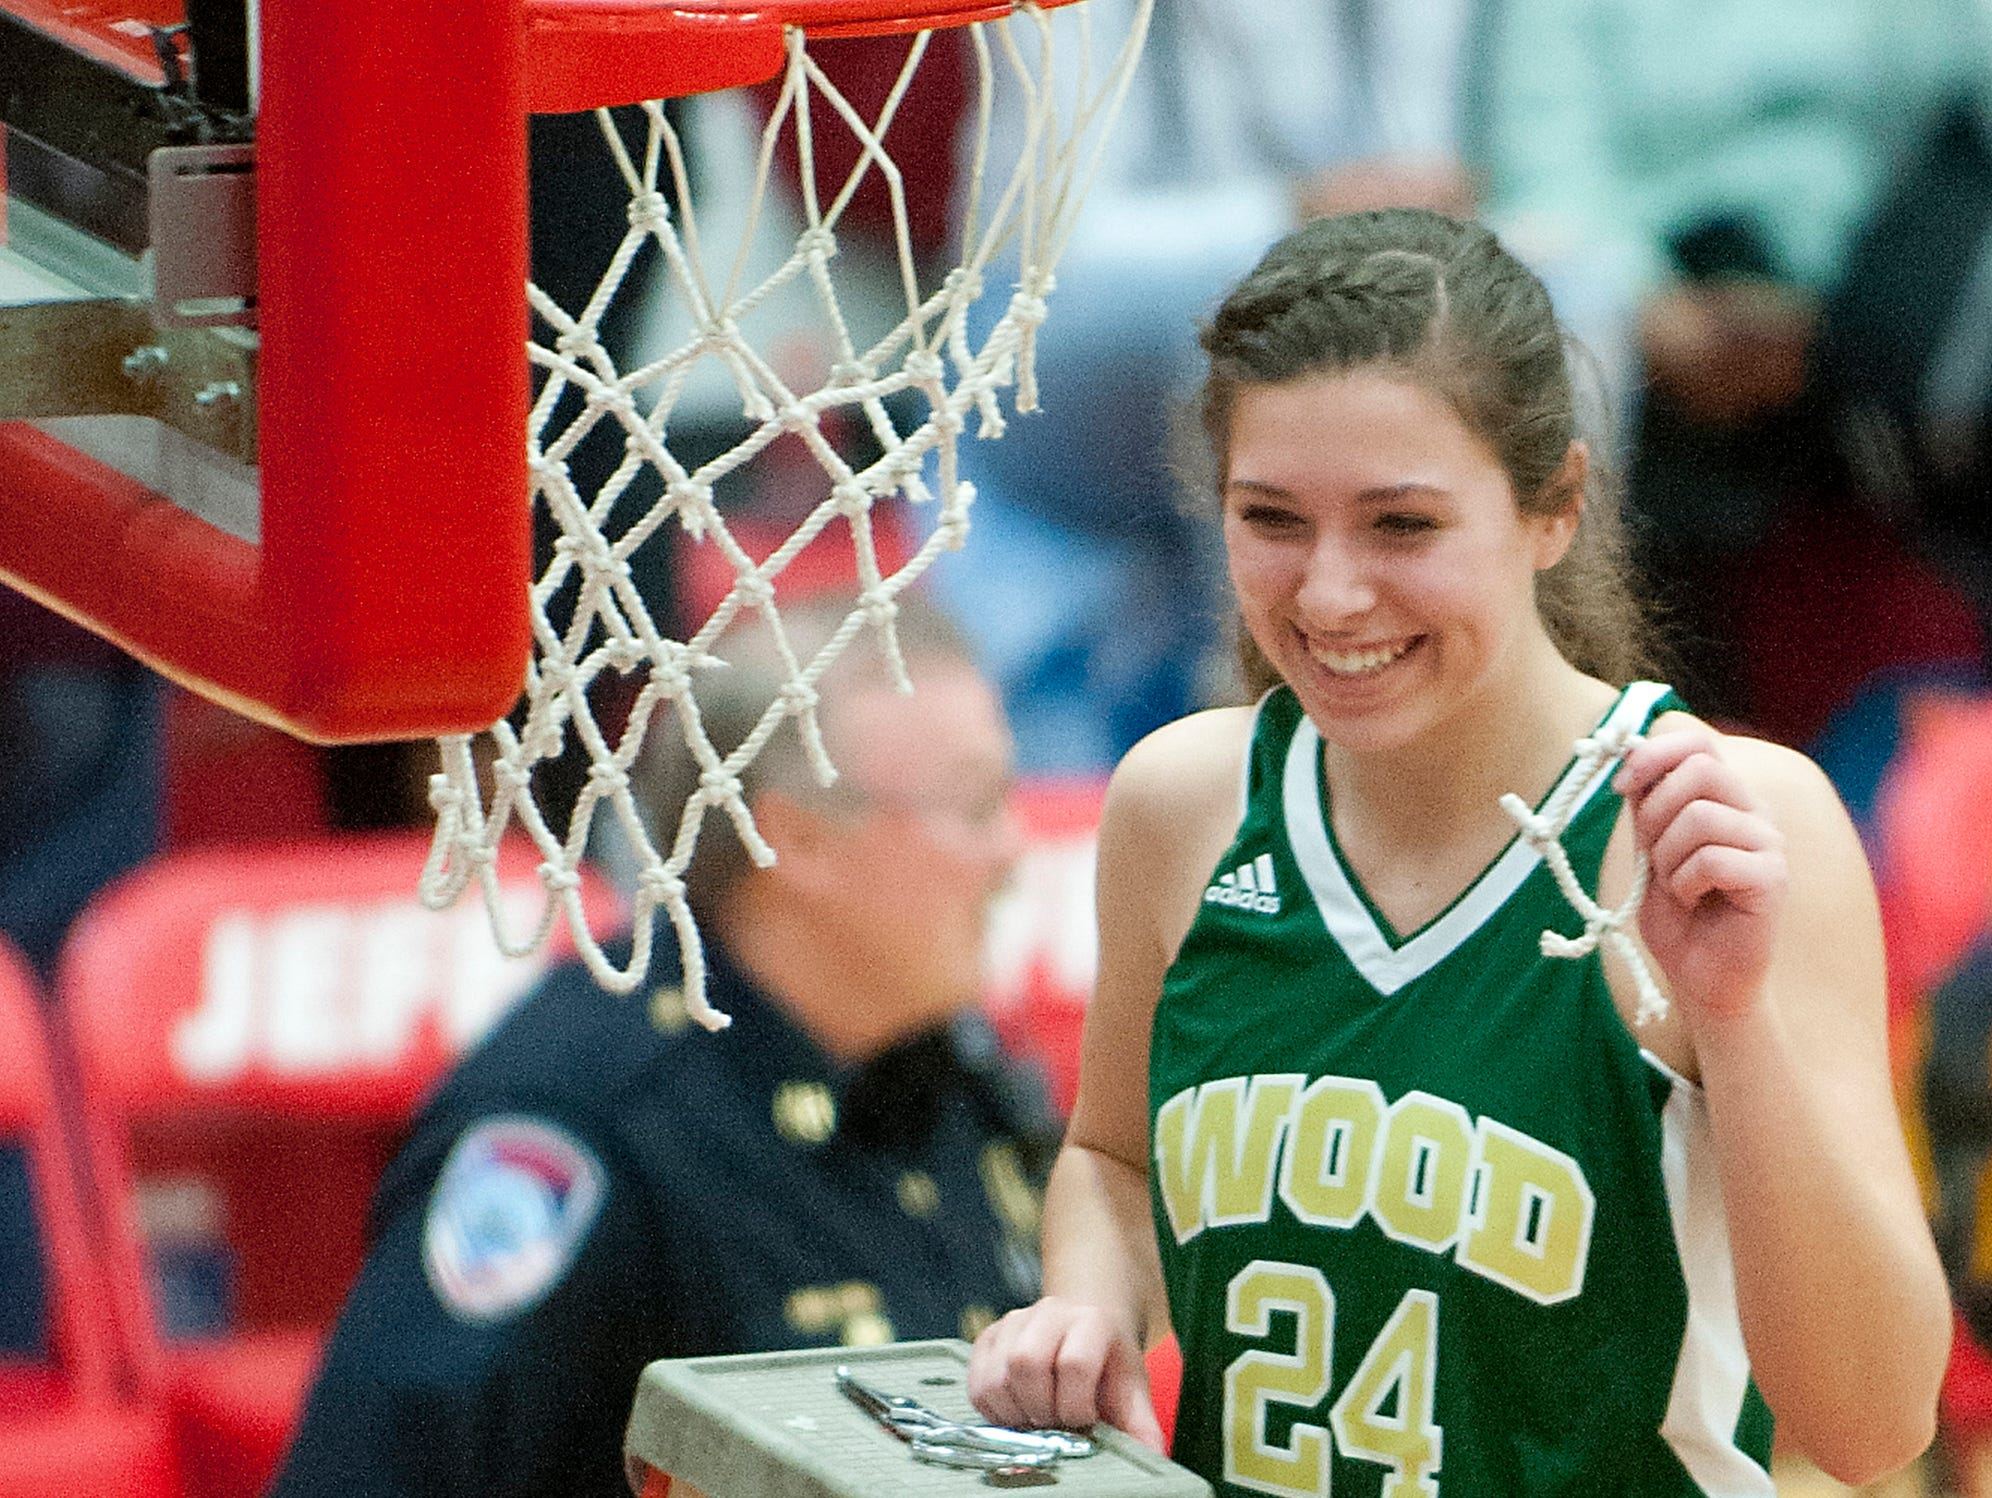 Wood Memorial player Katie Thacker shows off her part of the net she cut down after her team beat Tindley 59-50 in the IHSAA girls' class 1A semi-state. 17 February 2017